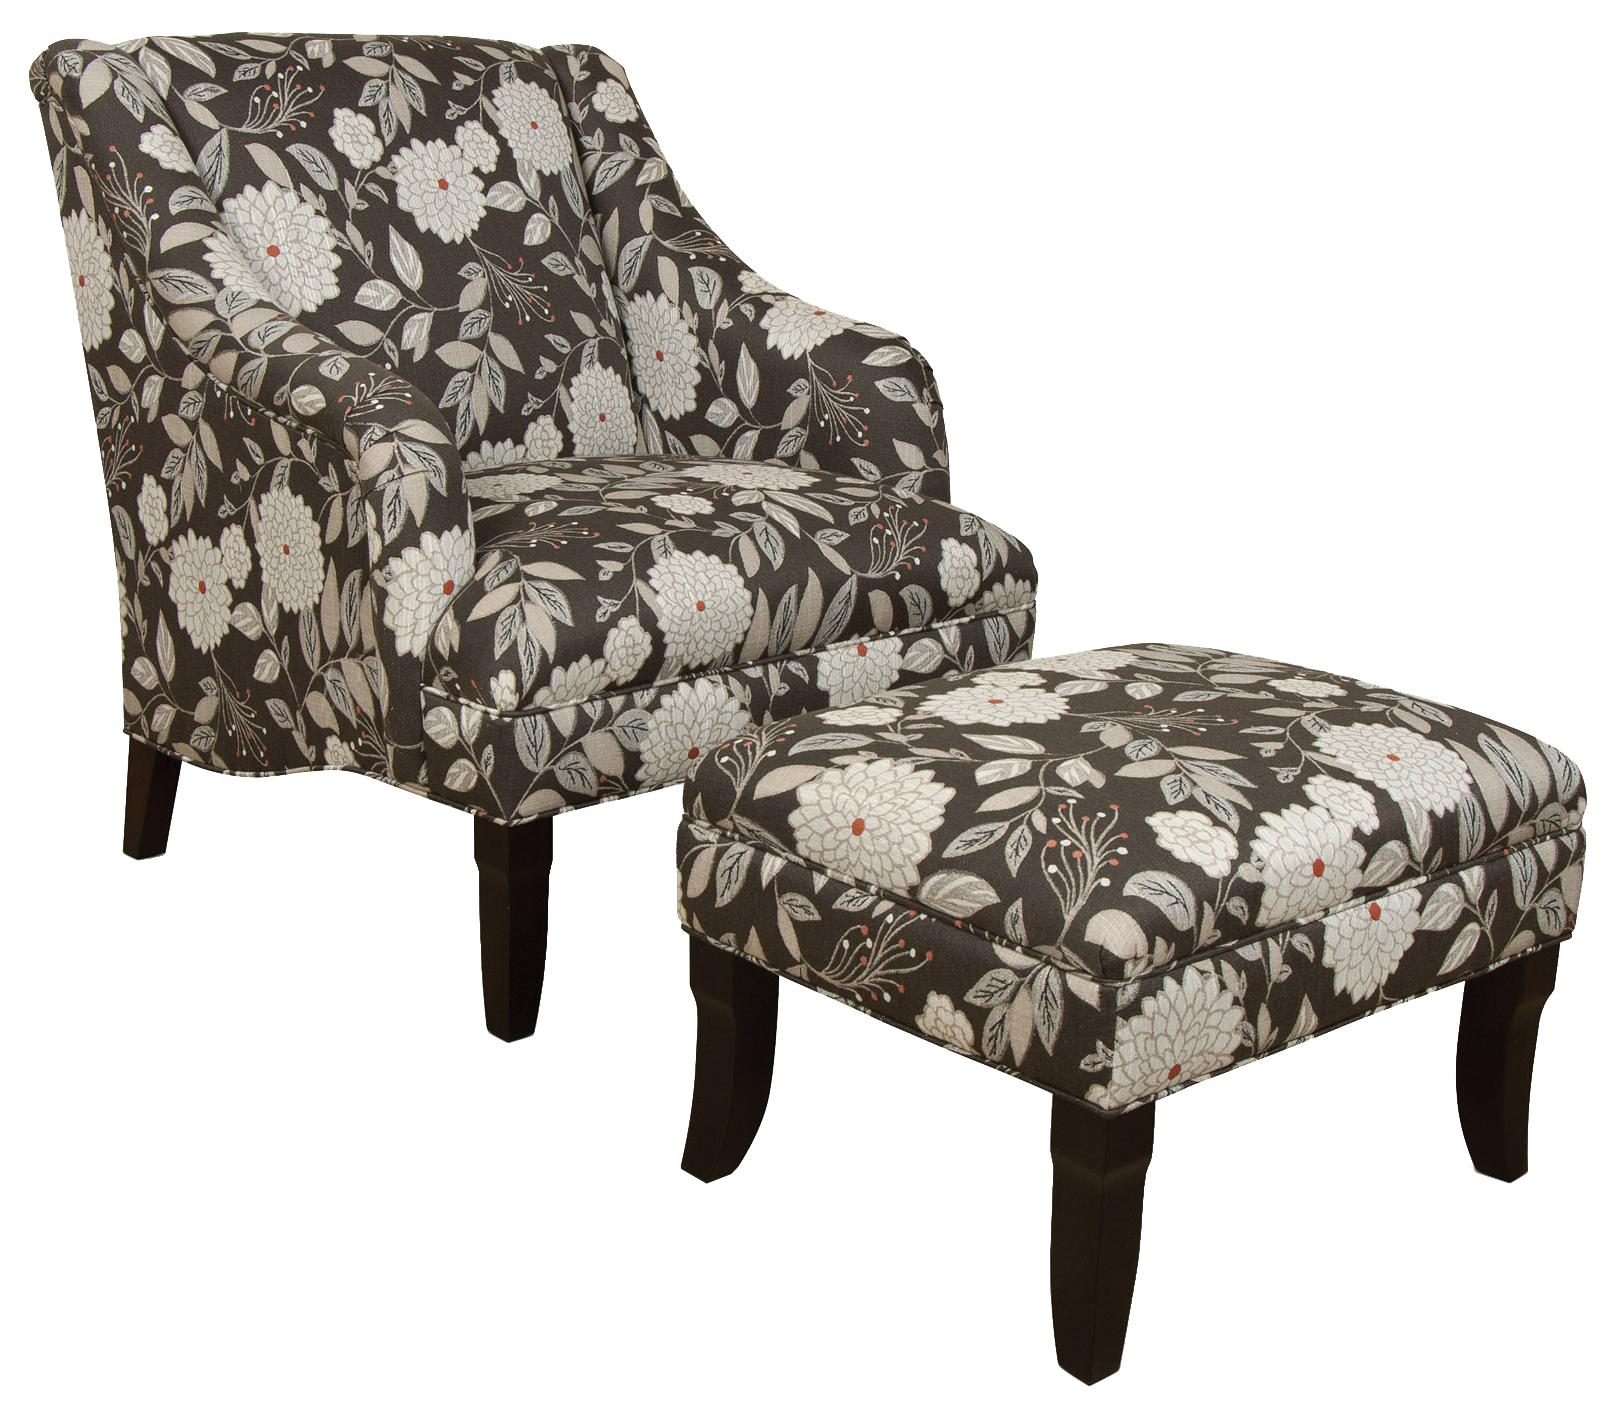 England Kinnett Chair and Ottoman Set - Item Number: 3934+7